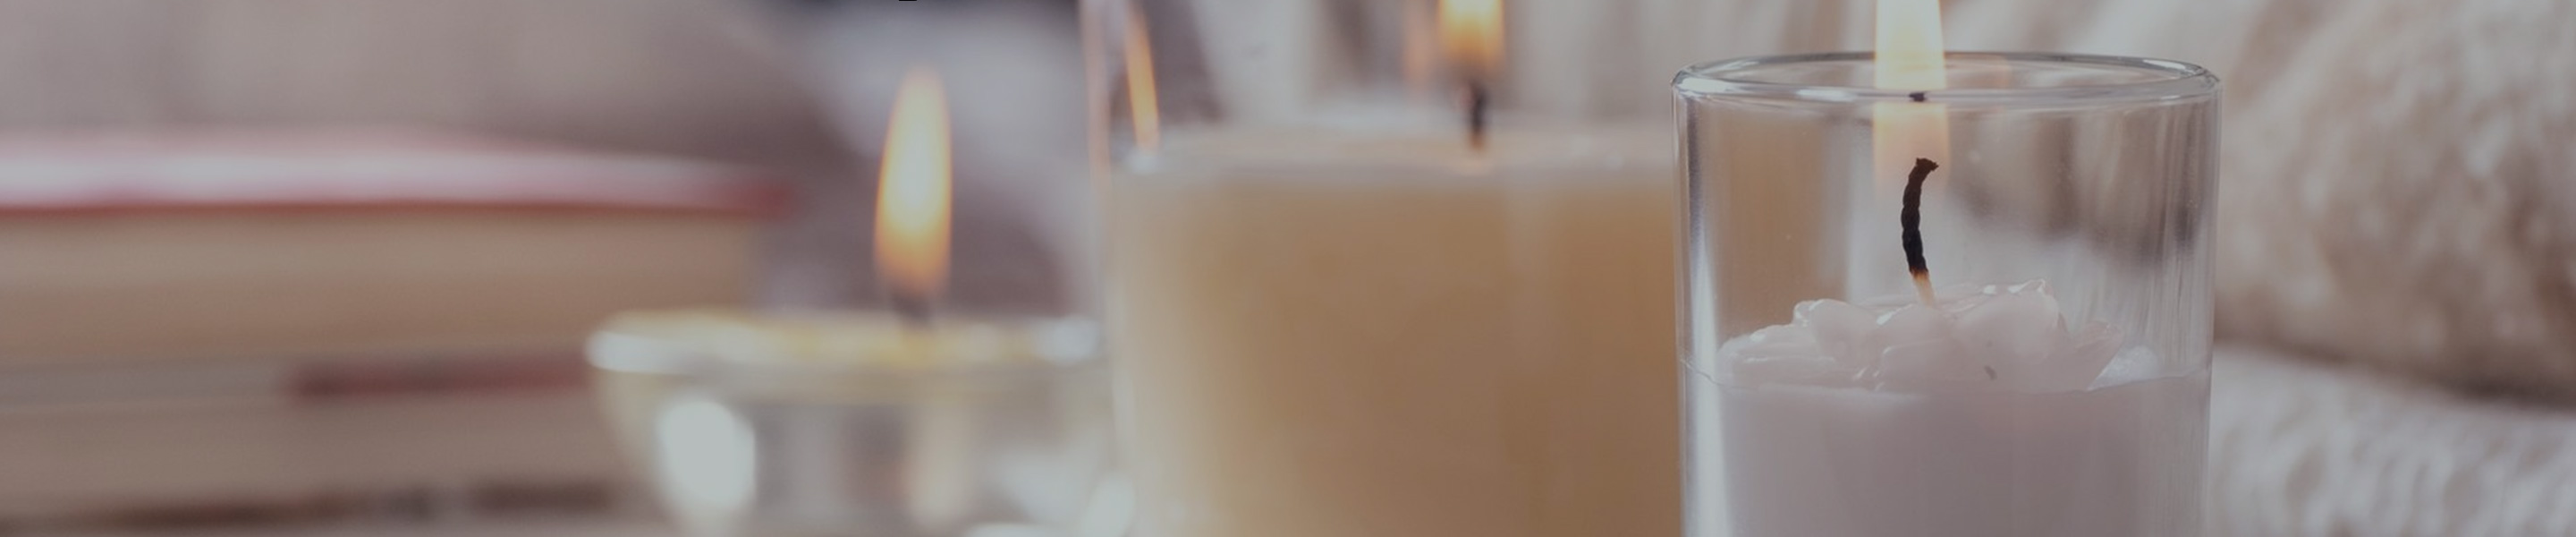 candle-need-page-banner.jpg